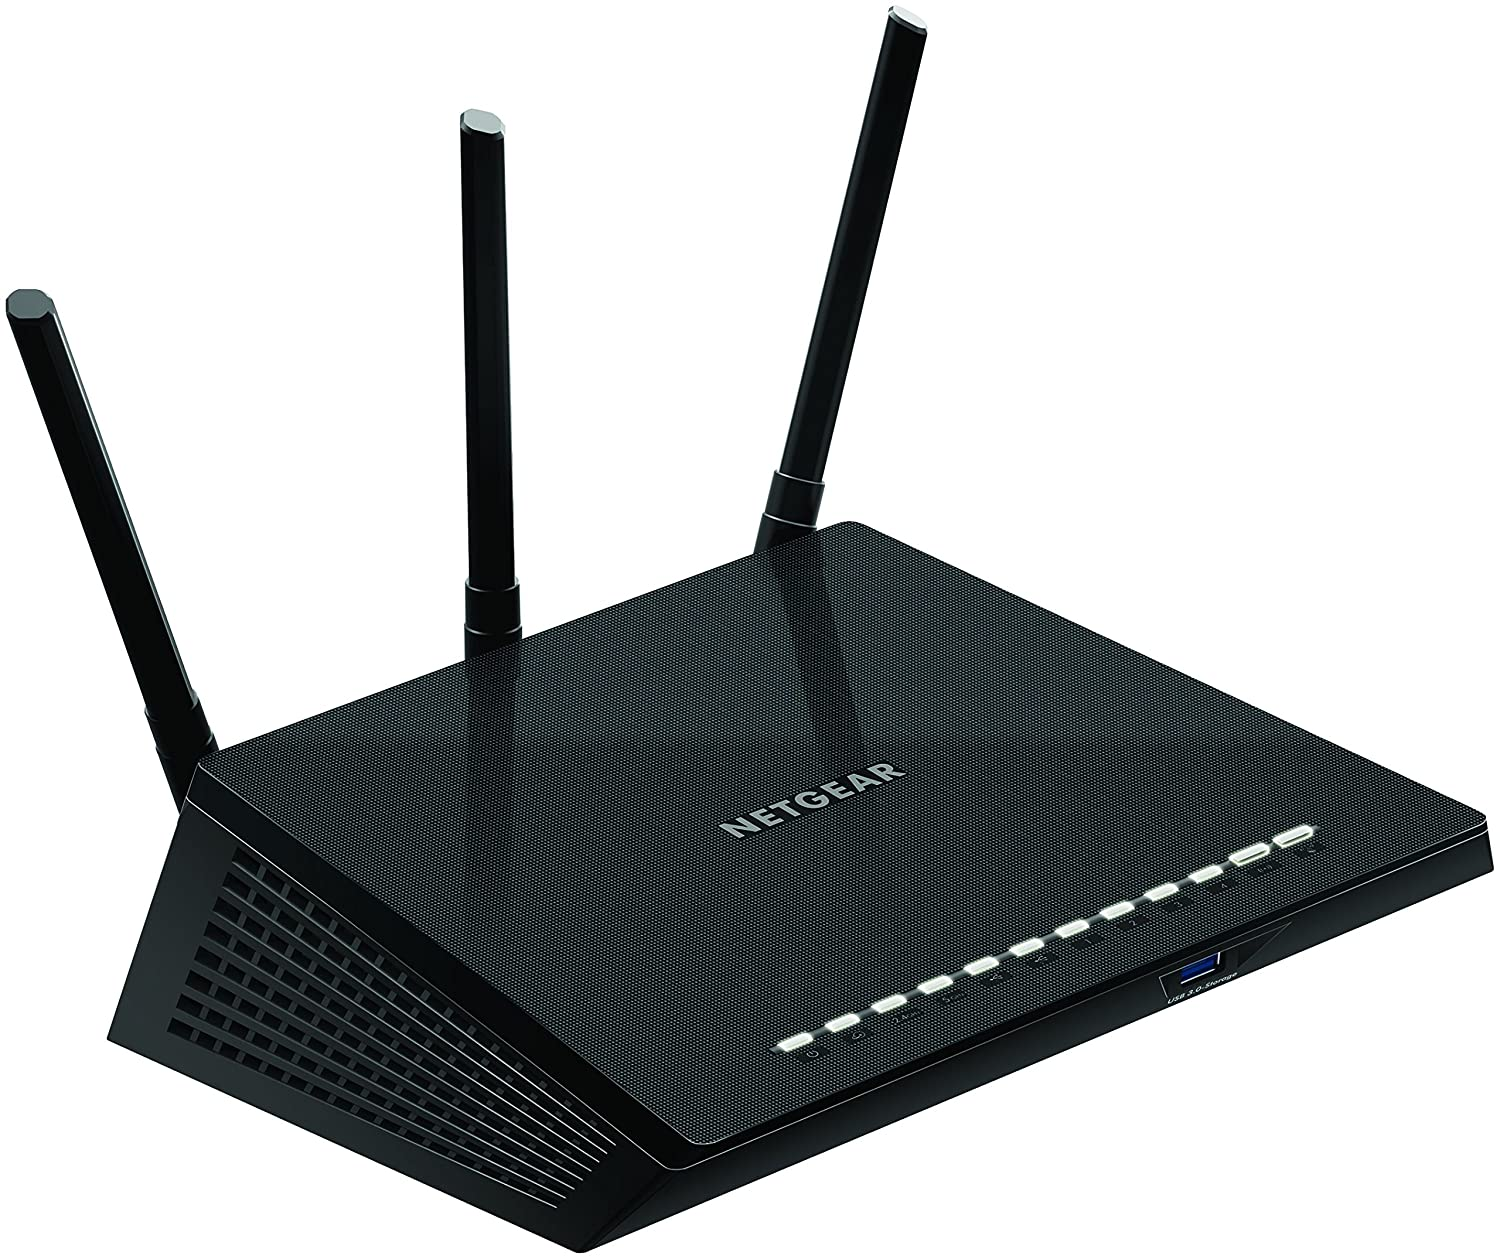 Netgear AC 1750 smart Wi-Fi router Black Friday Deal 2019